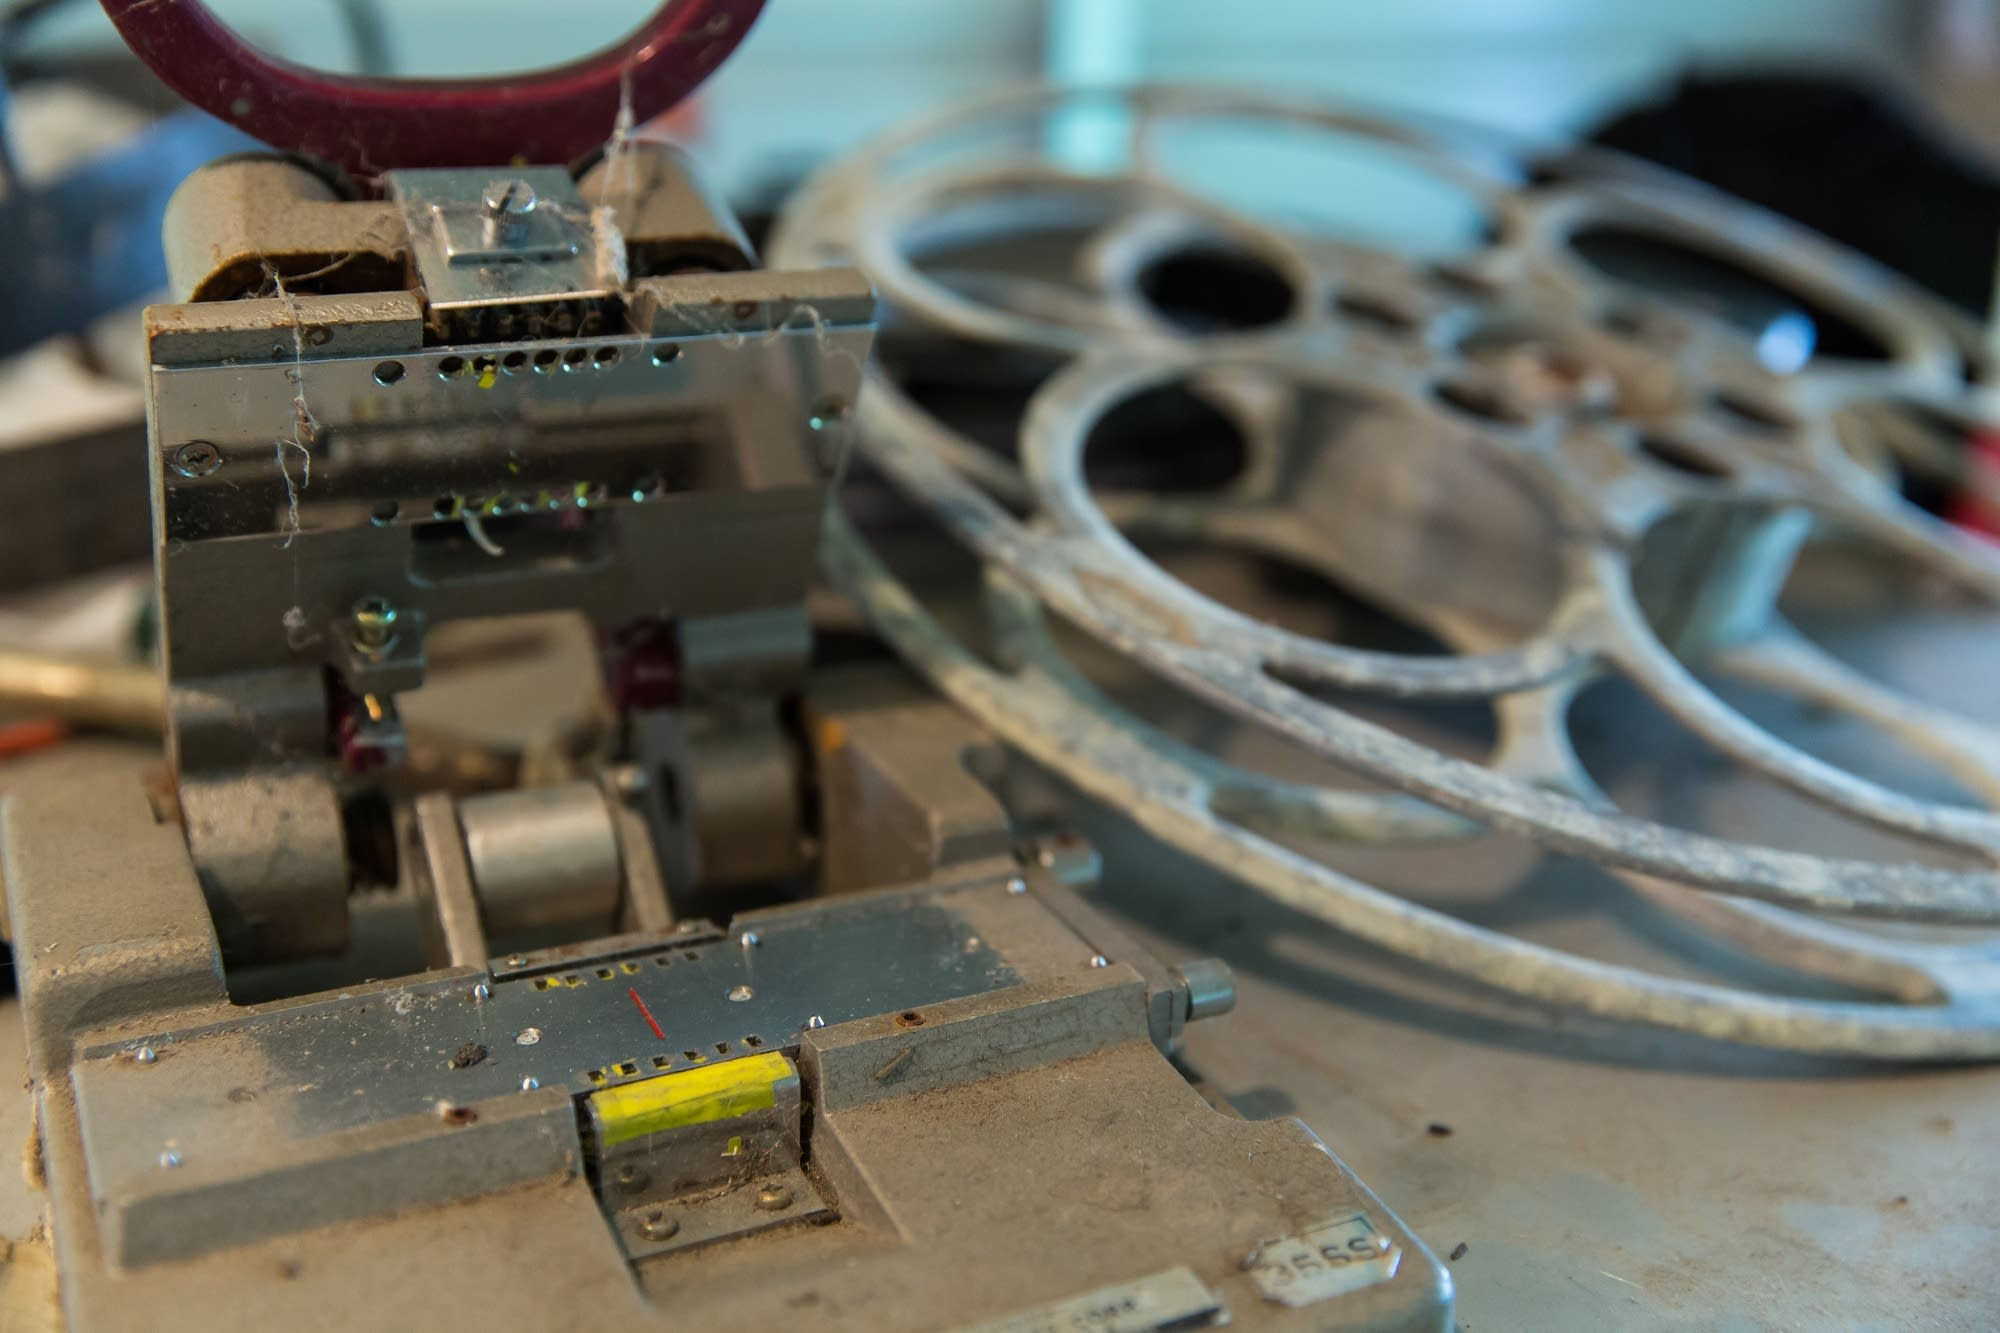 An old film cutting machine sits alongside an empty film reel.